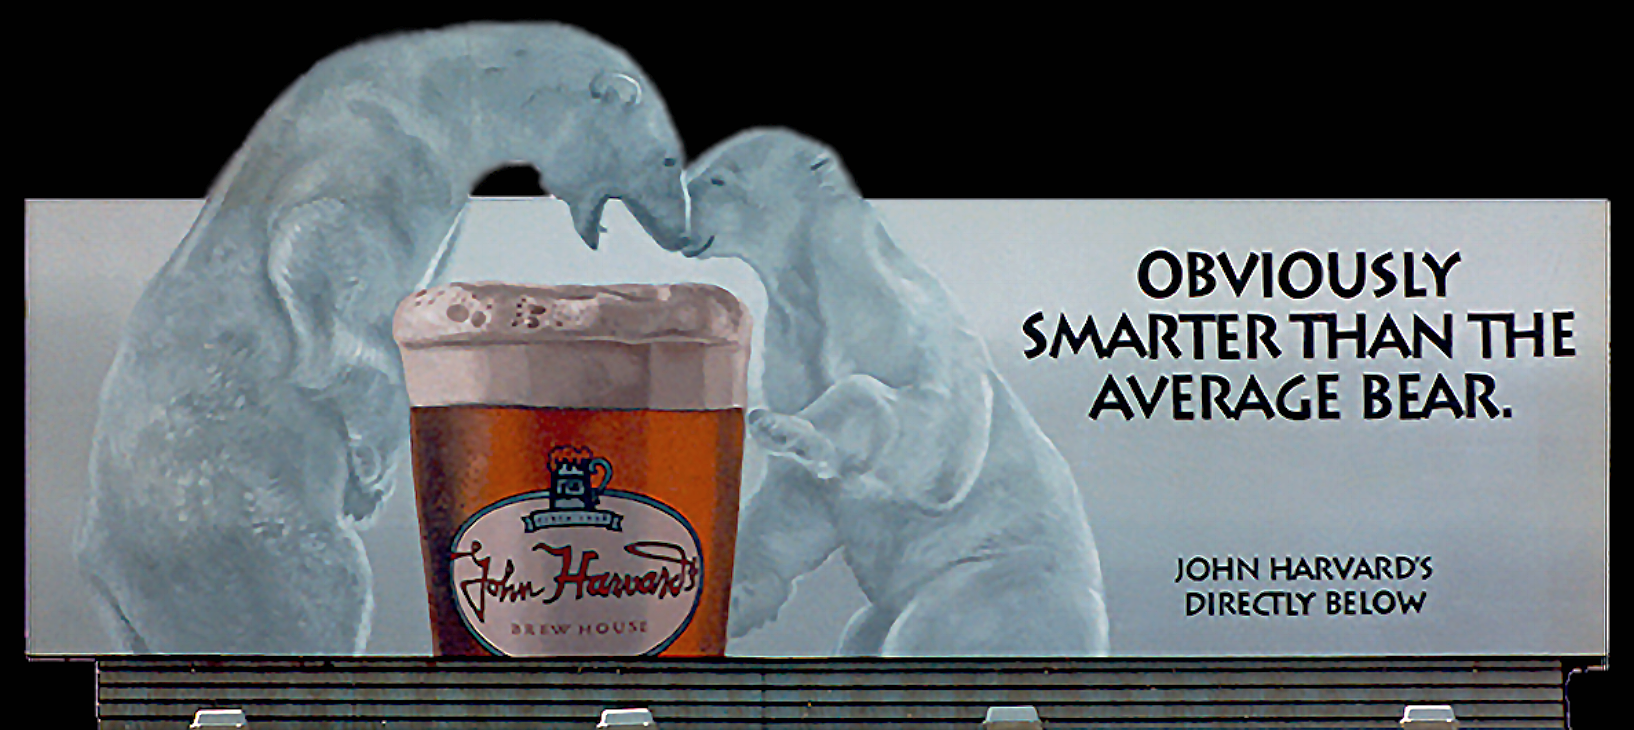 """Outdoor Advertising- """"Obviously Smarter Than The Average Bear"""" • John Harvard's brew house. 14' by 48' billboard, hand painted in bulletin enamel ."""